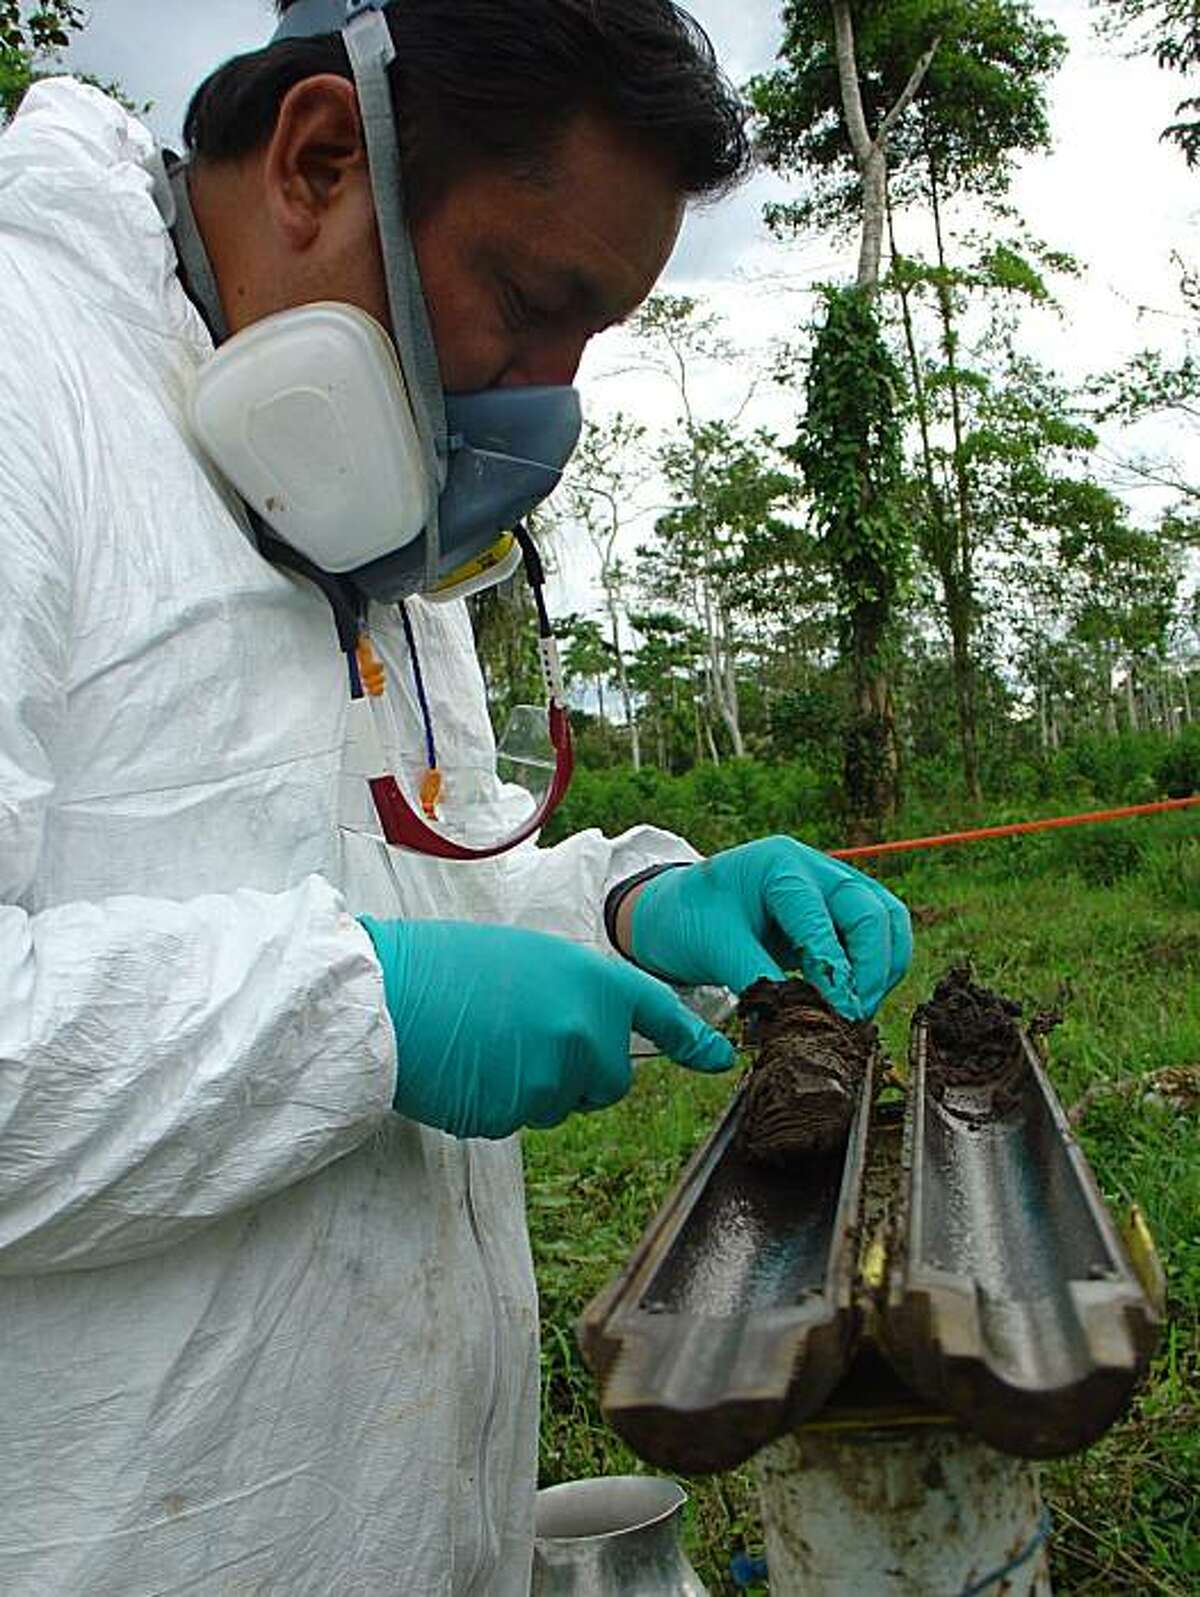 Soil samples at this location in Ecuador were the subject of a 2004 contamination report that Chevron says was falsified.